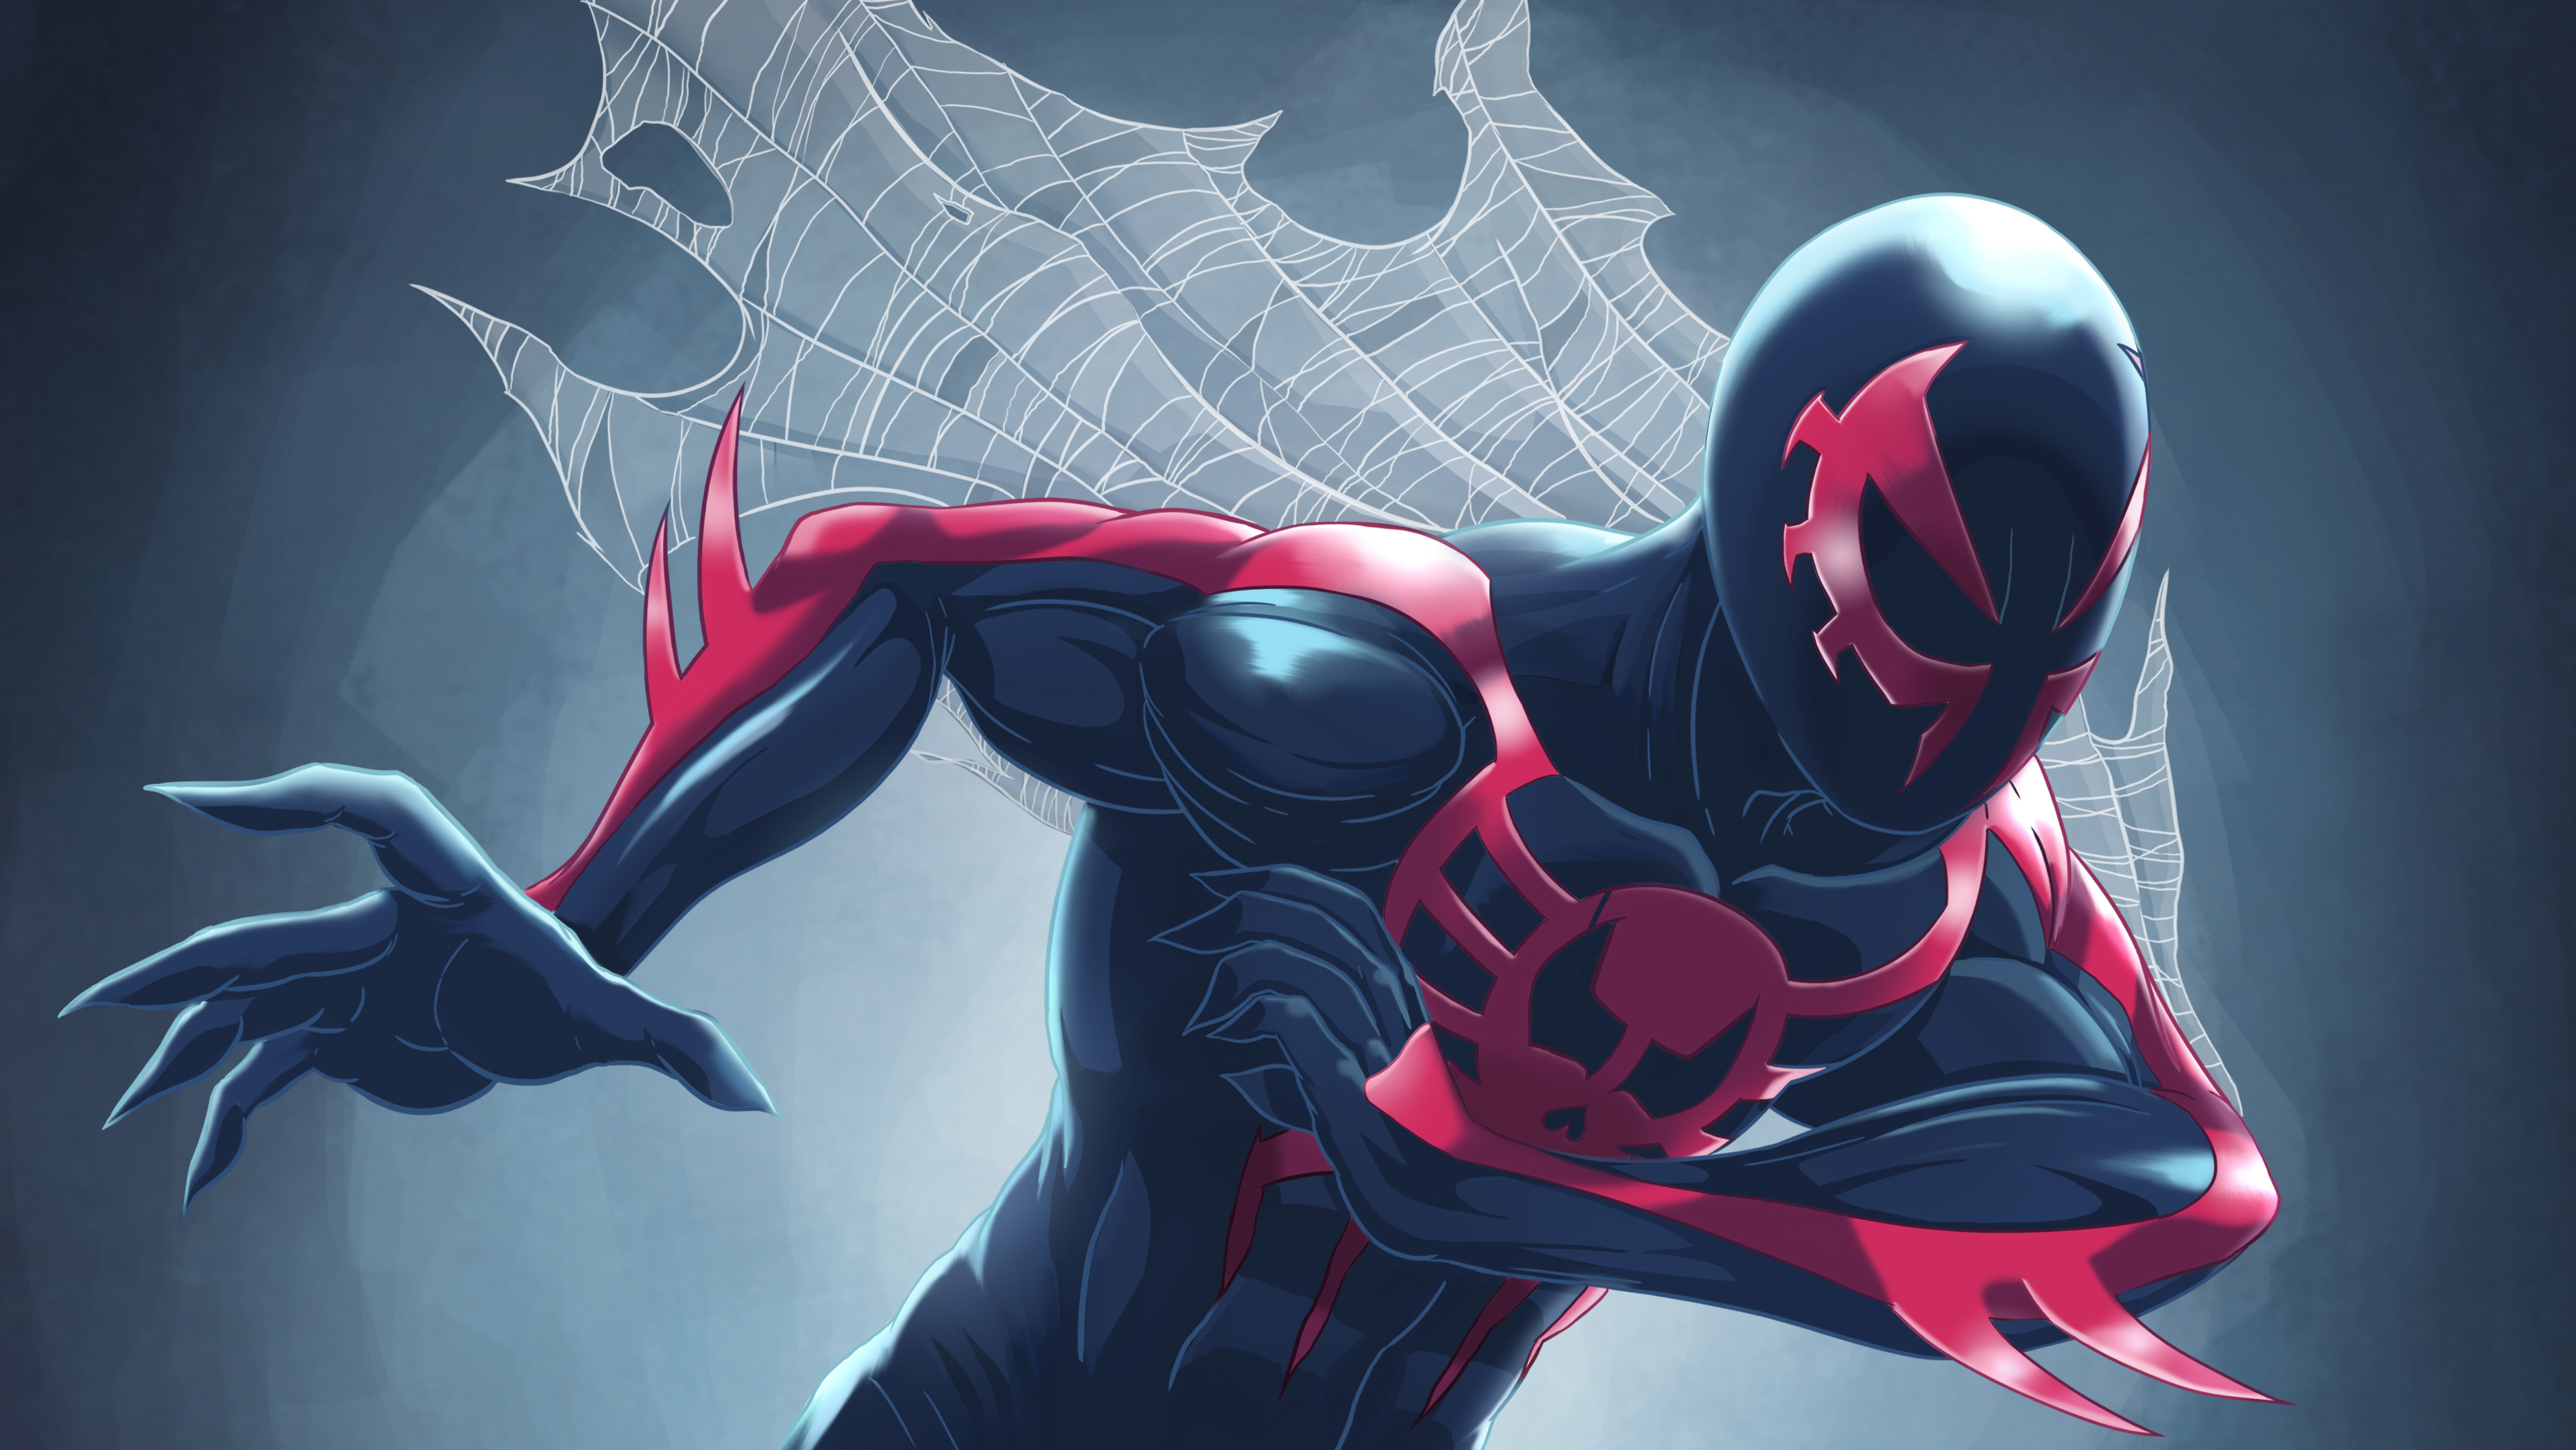 Cool Spiderman 2099 Wallpaper: Spiderman 2099, HD Superheroes, 4k Wallpapers, Images